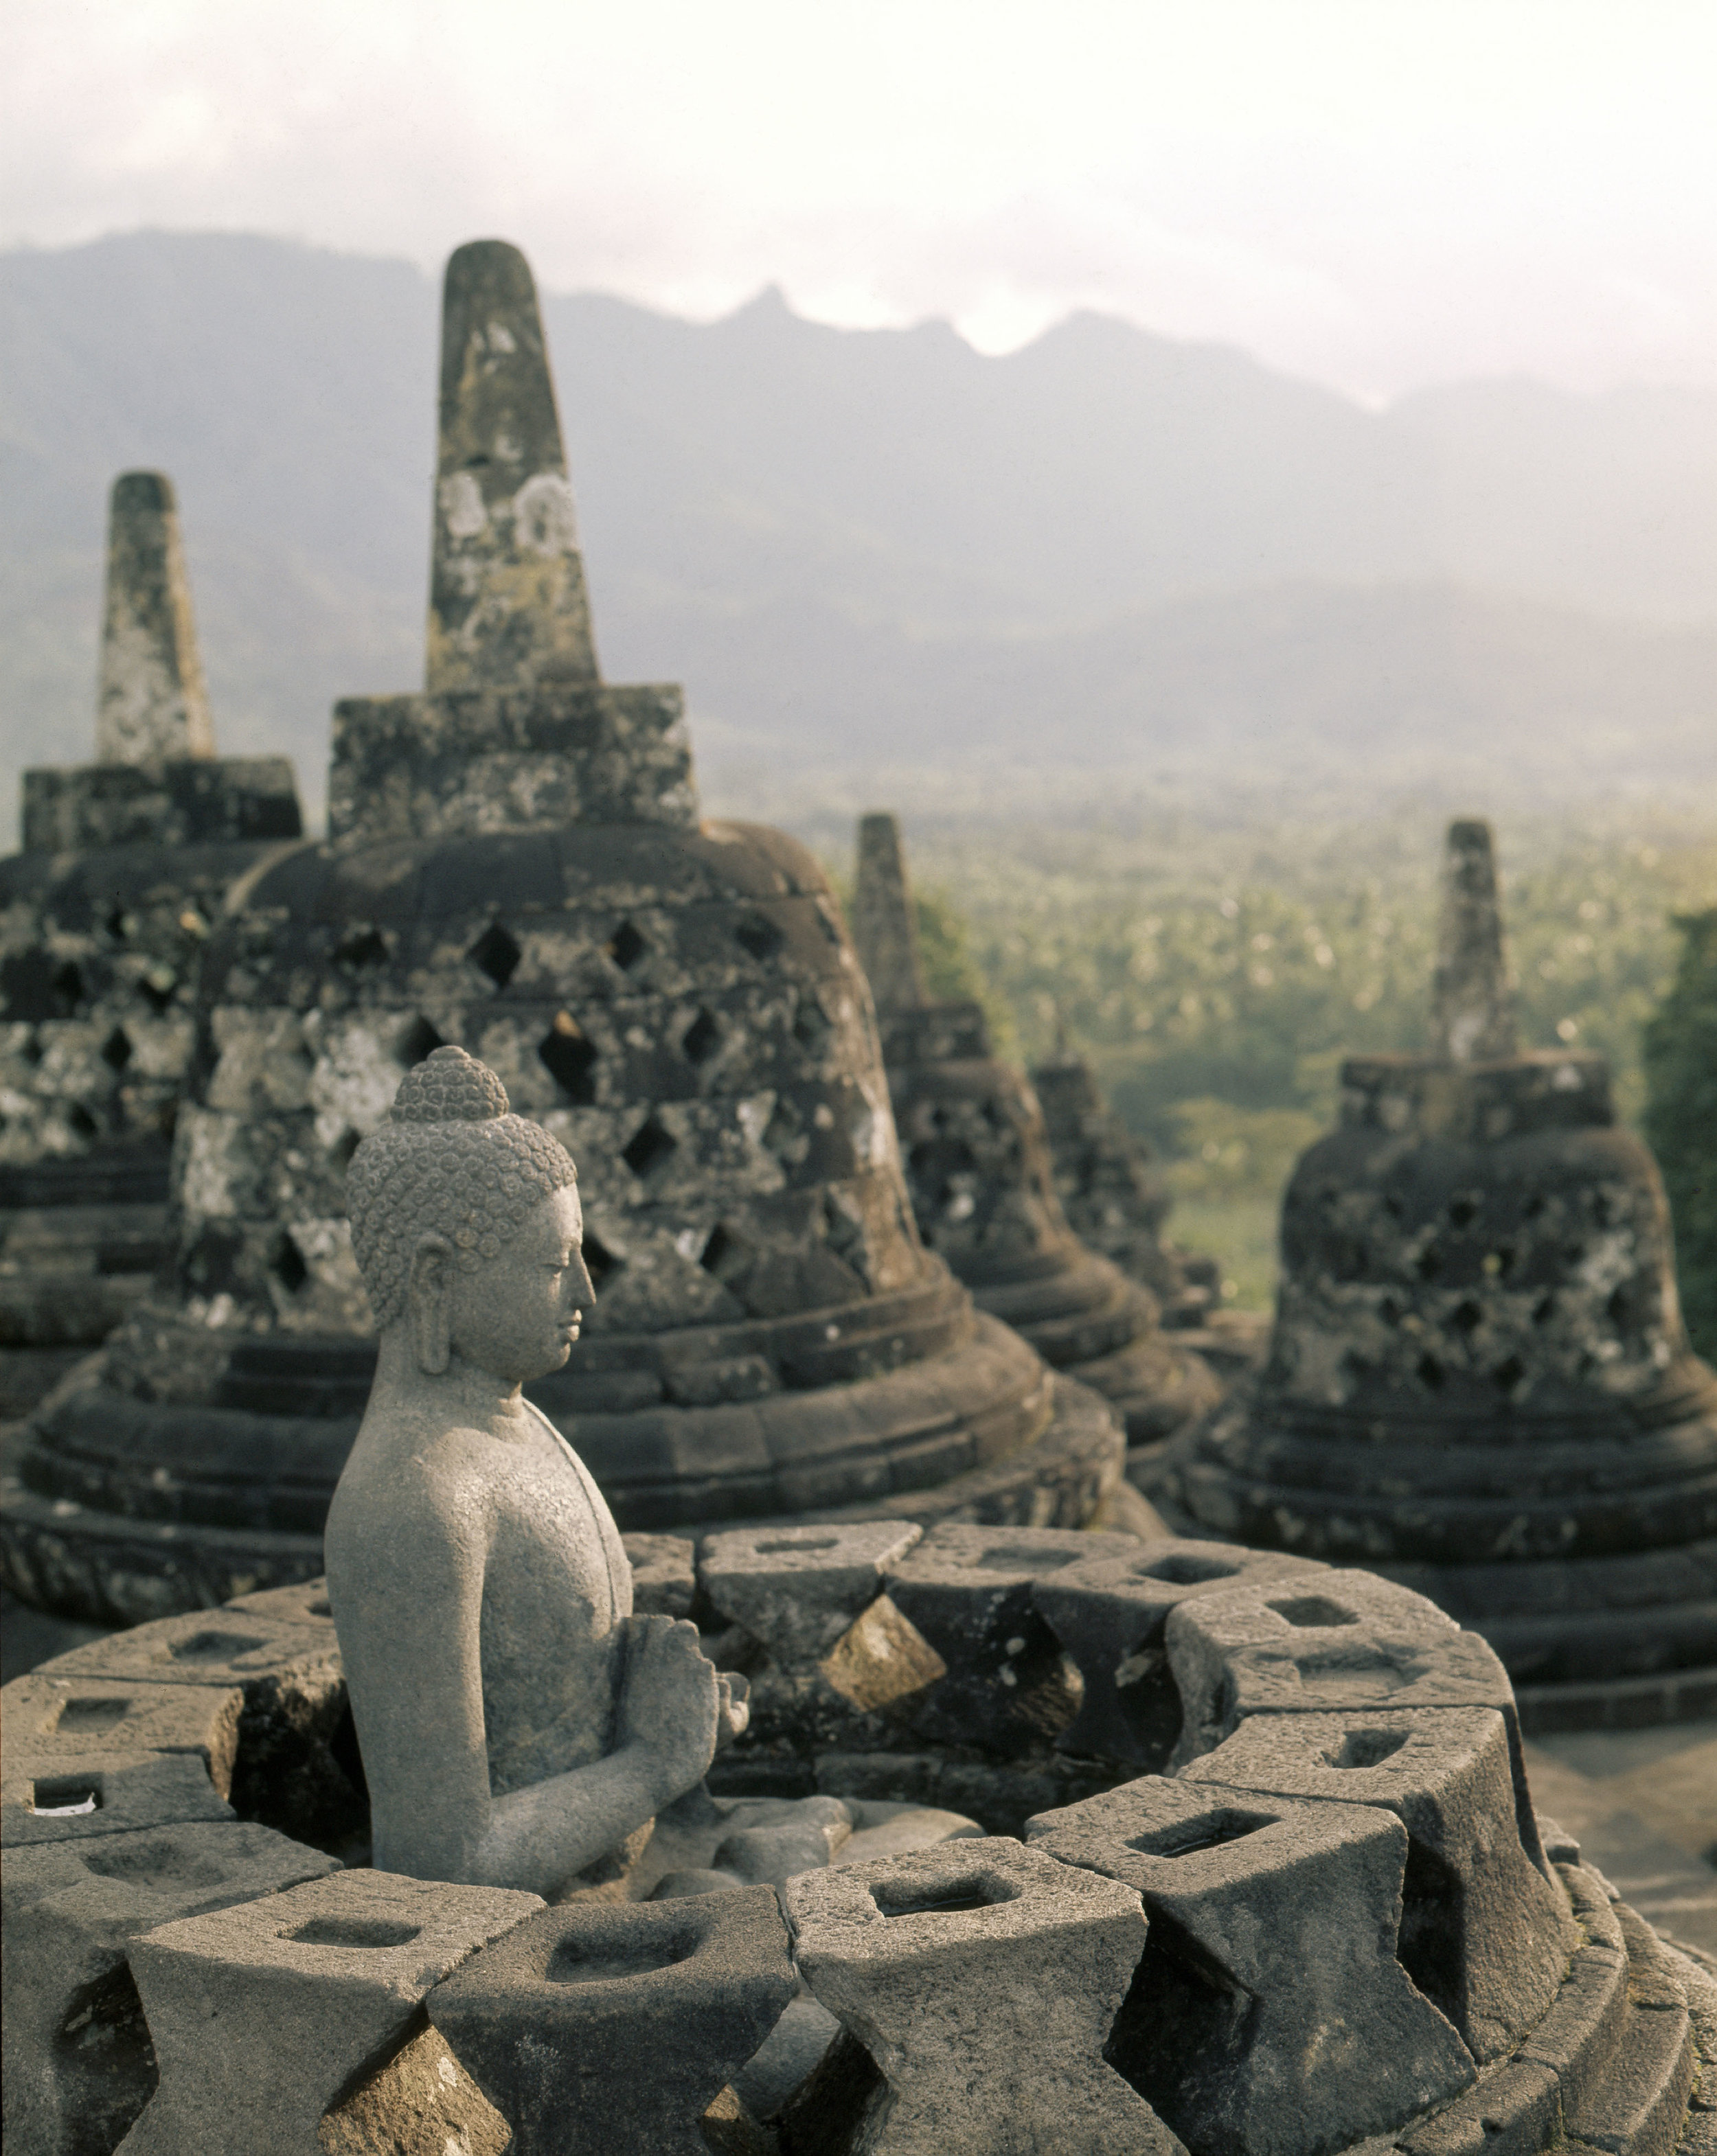 The circular terraces, Borobudur. Each stupa houses a figure of the Dhyani-Buddha Vajrasattva in the attitude of preaching. Country of Origin: Indonesia. Culture: Buddhist. Date/Period: 8th C. Place of Origin: Central Java. Credit Line: Werner Forman Archive.